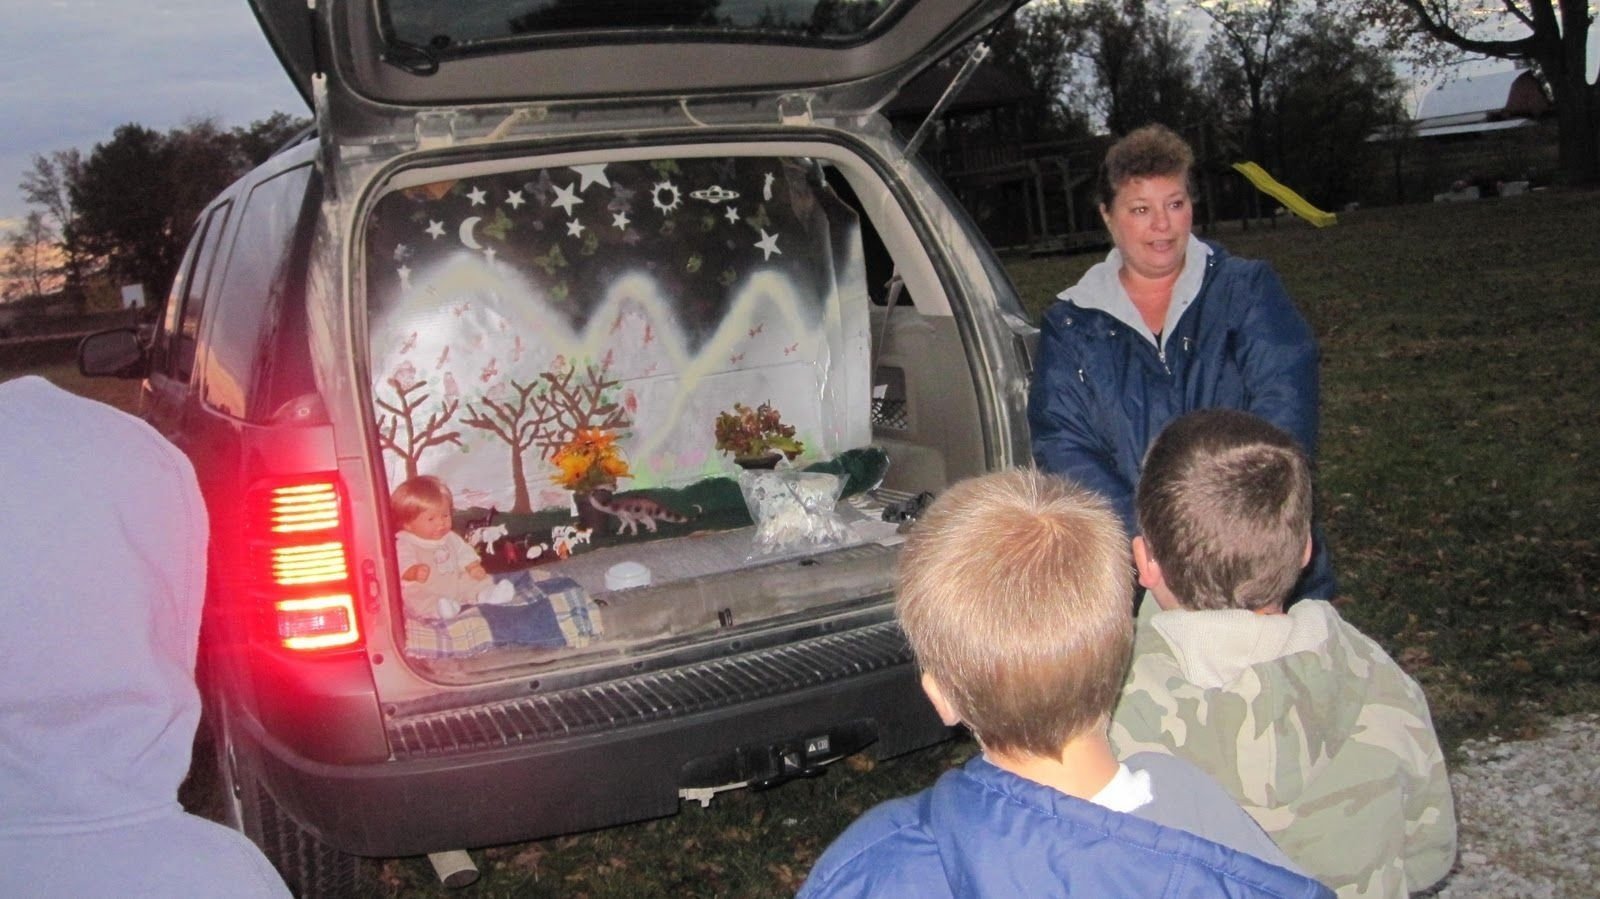 10 Attractive Biblical Trunk Or Treat Decorating Ideas image result for christian trunk or treat themes fall halloween 2020